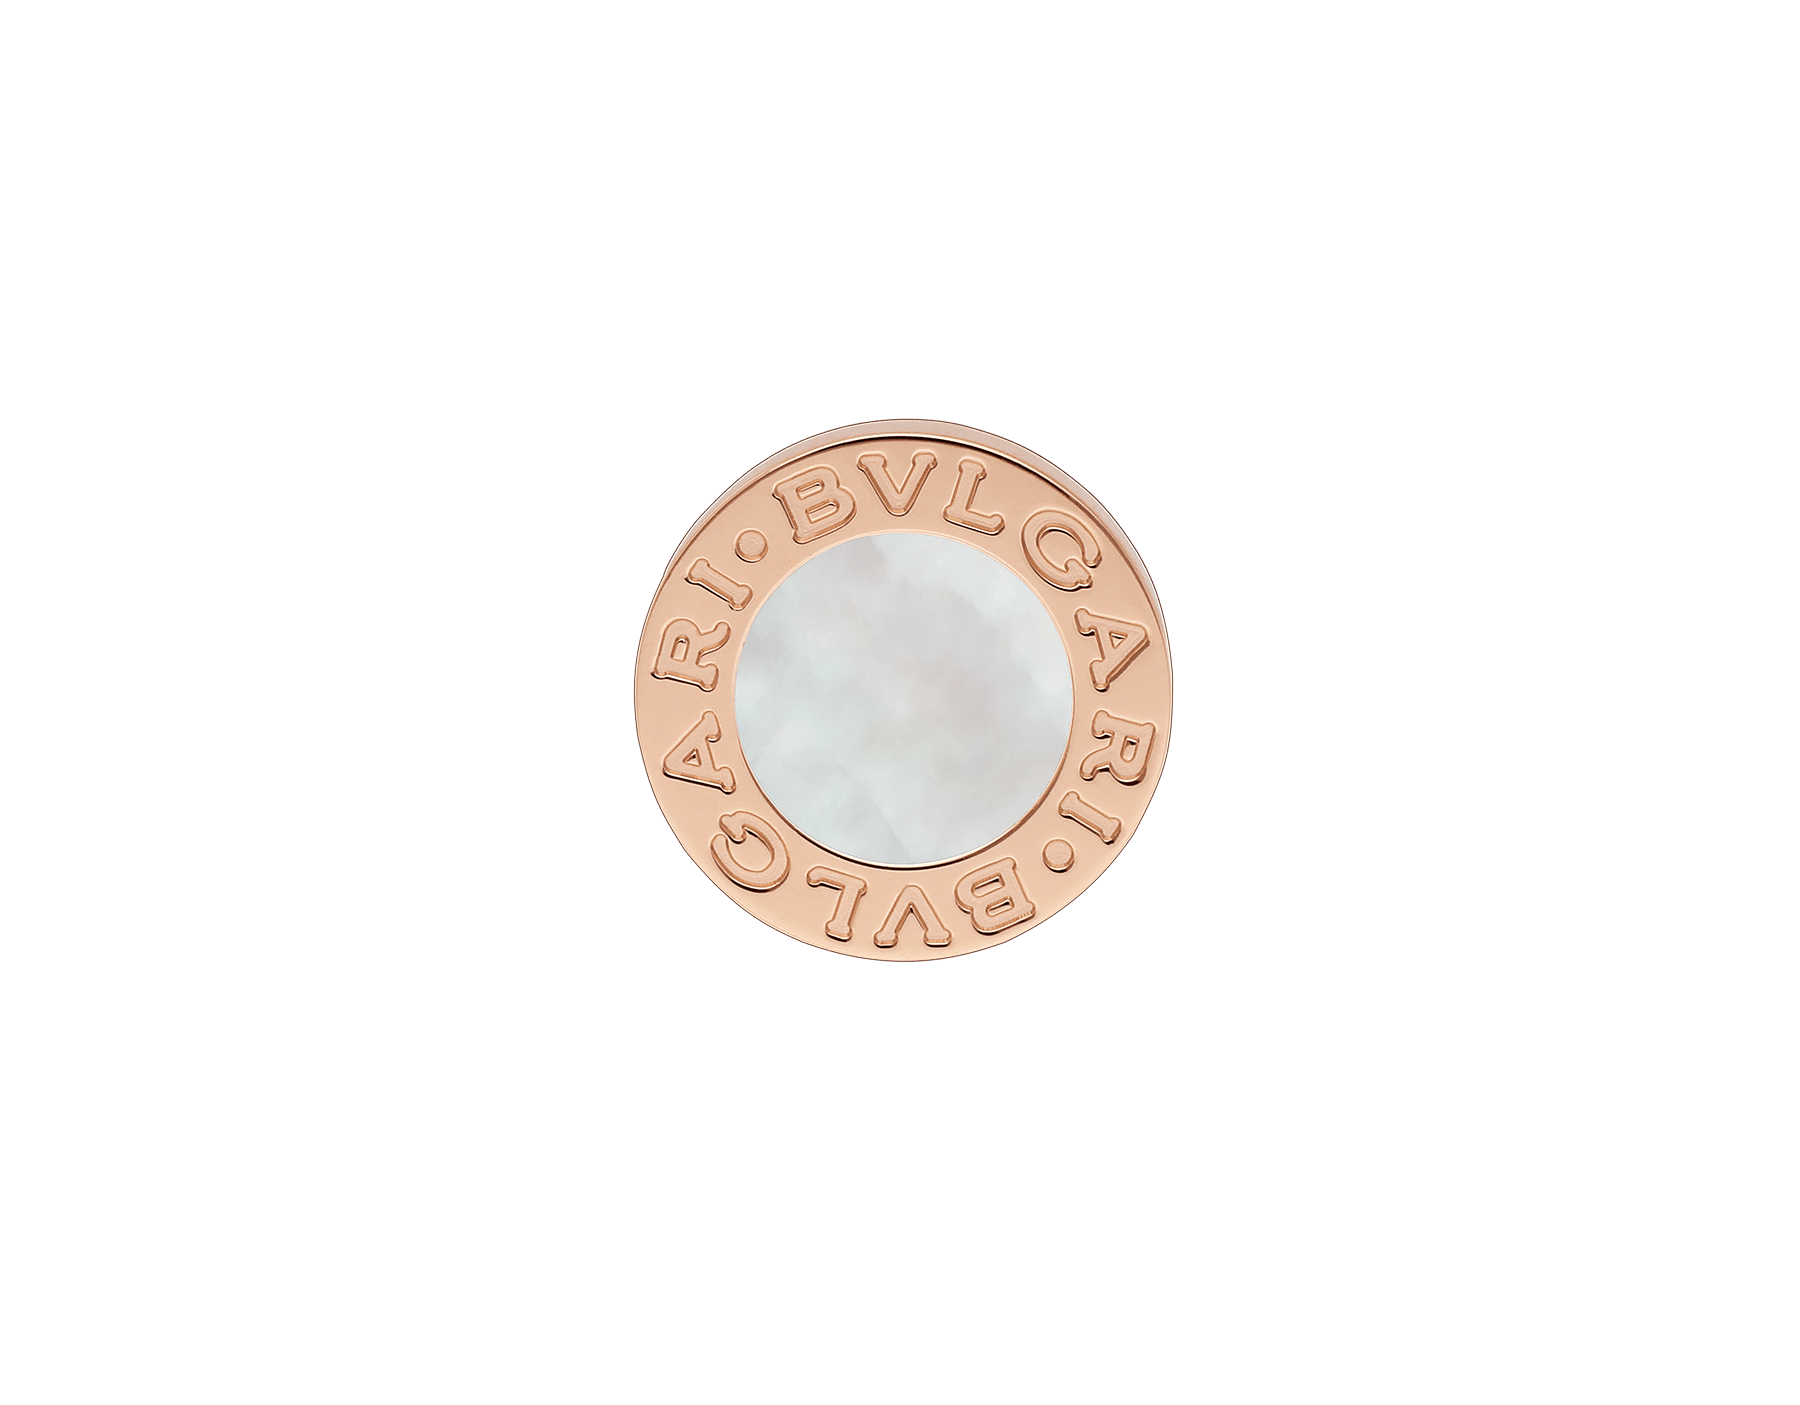 BVLGARI BVLGARI 18 kt rose gold single stud earring with mother-of-pearl 354732 image 1